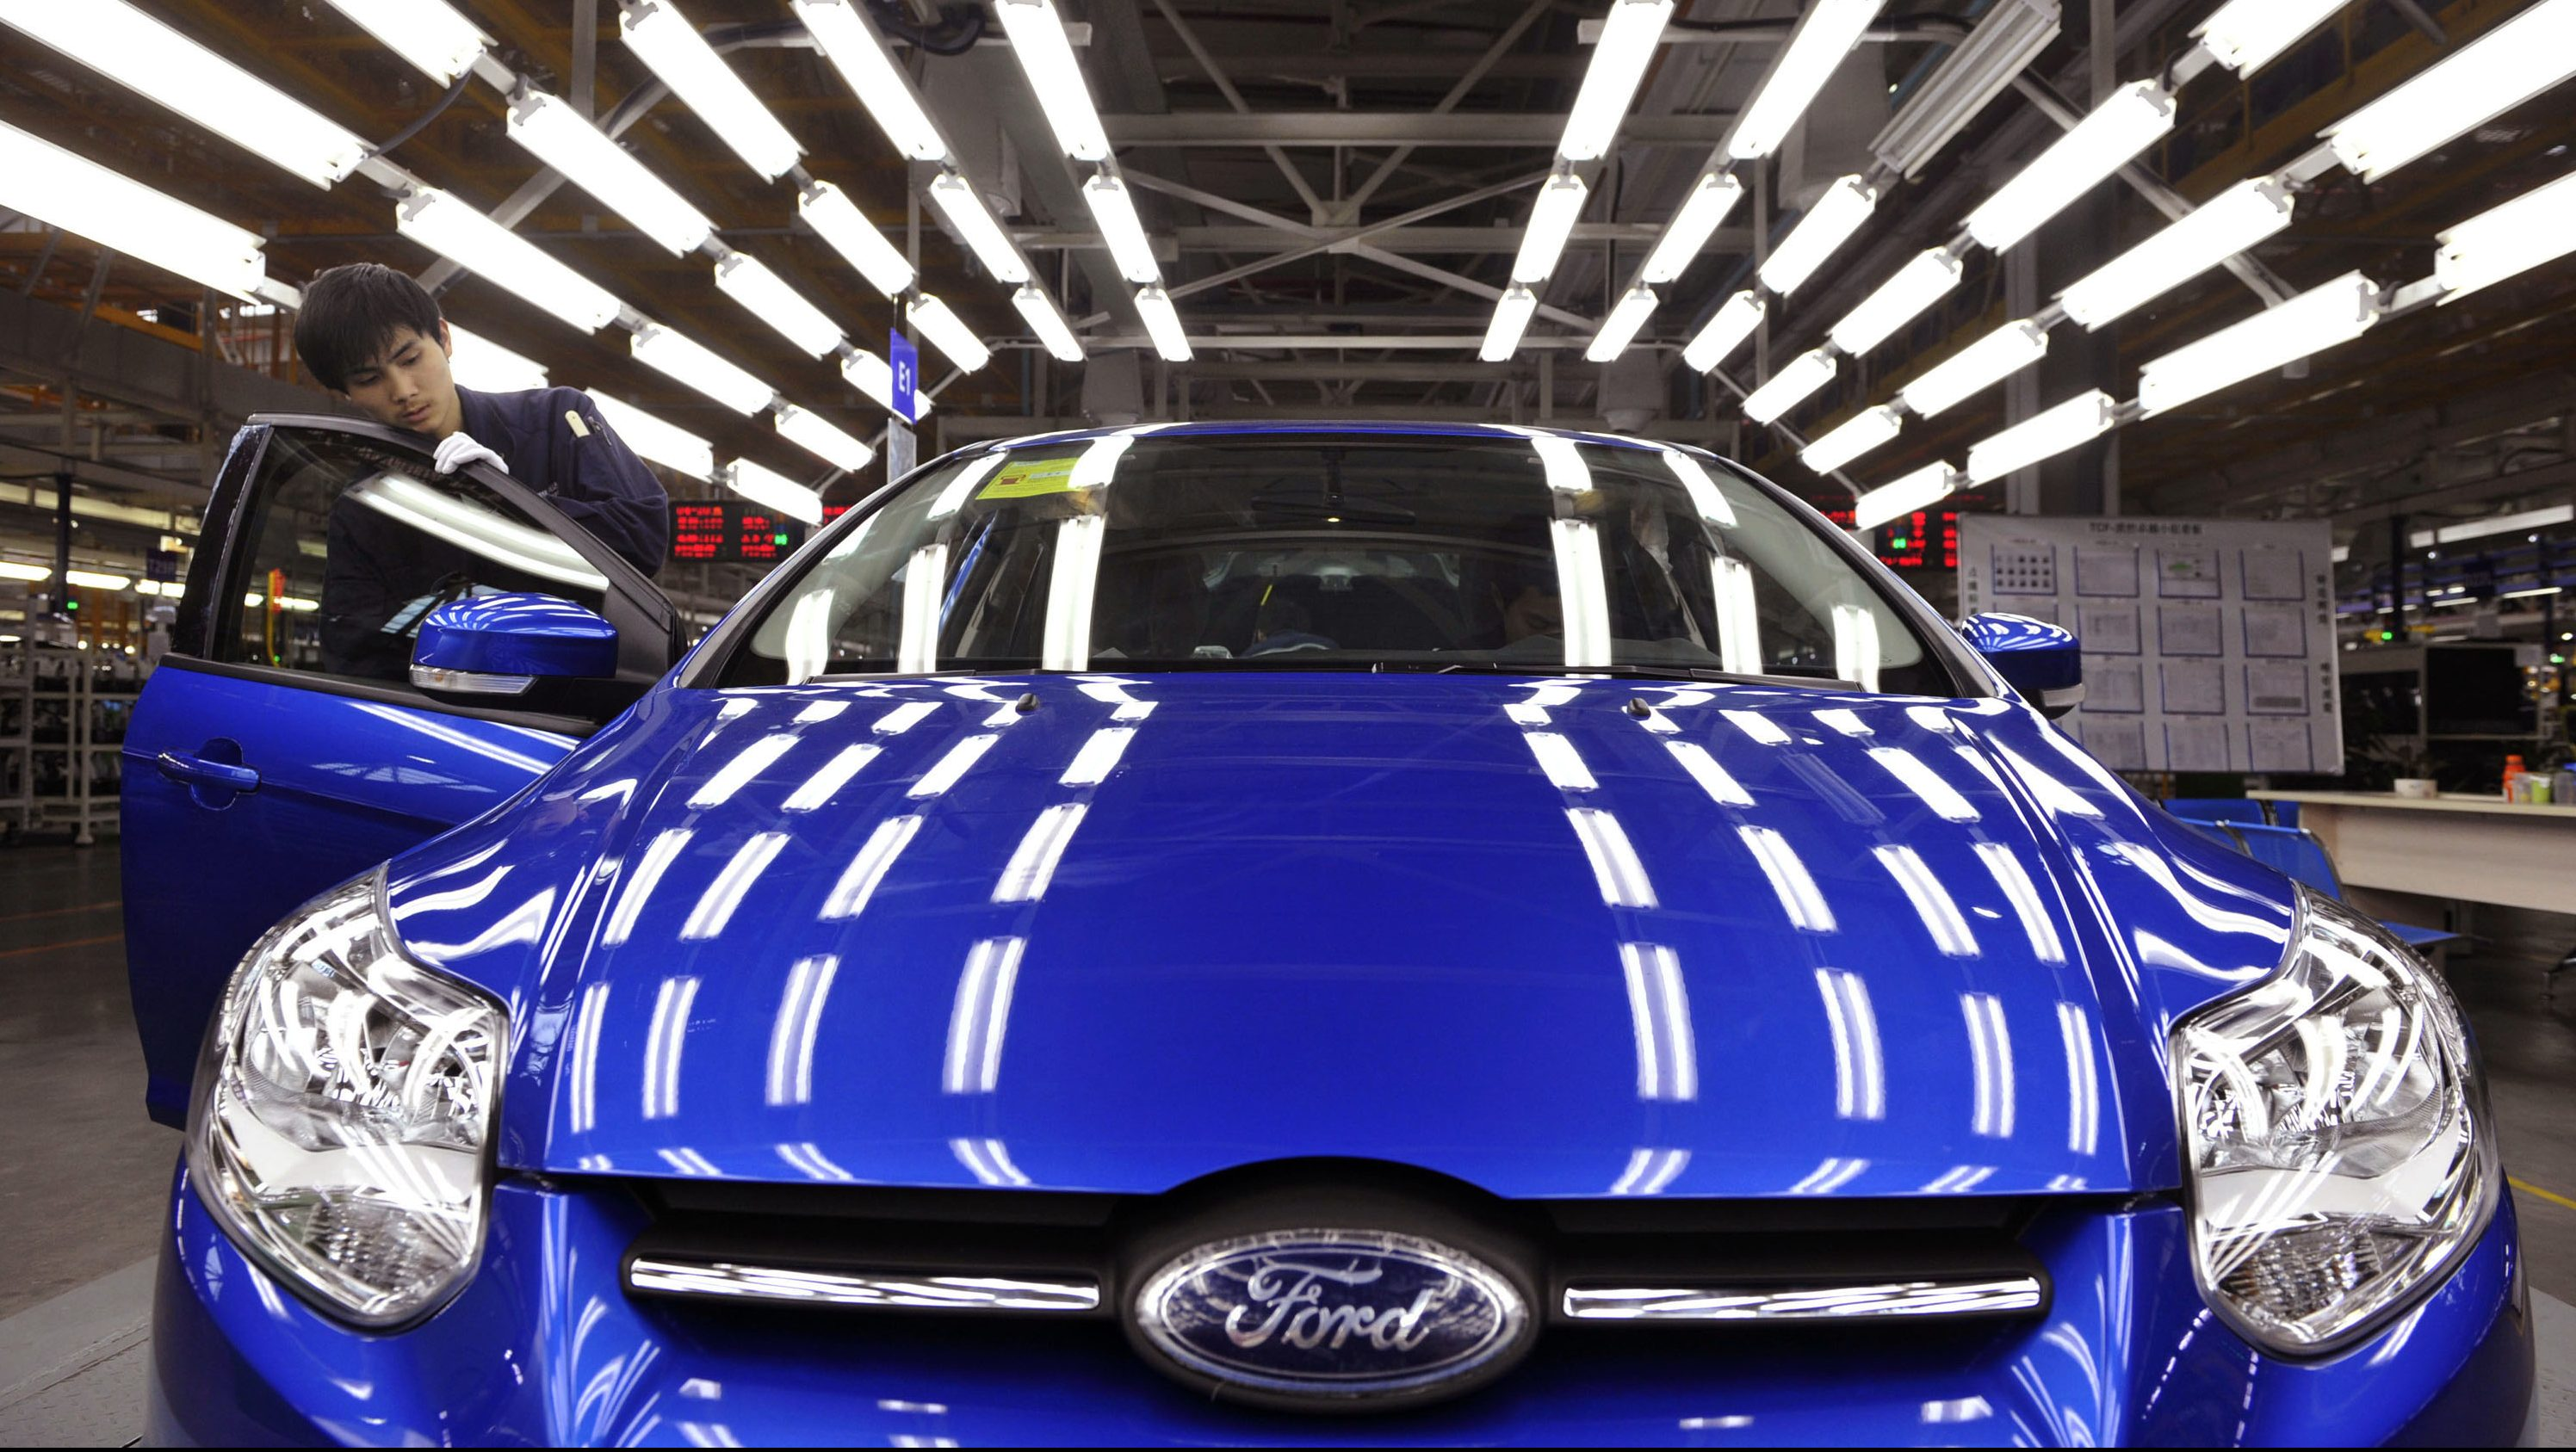 An employee works at an assembly line at a Ford manufacturing plant in China